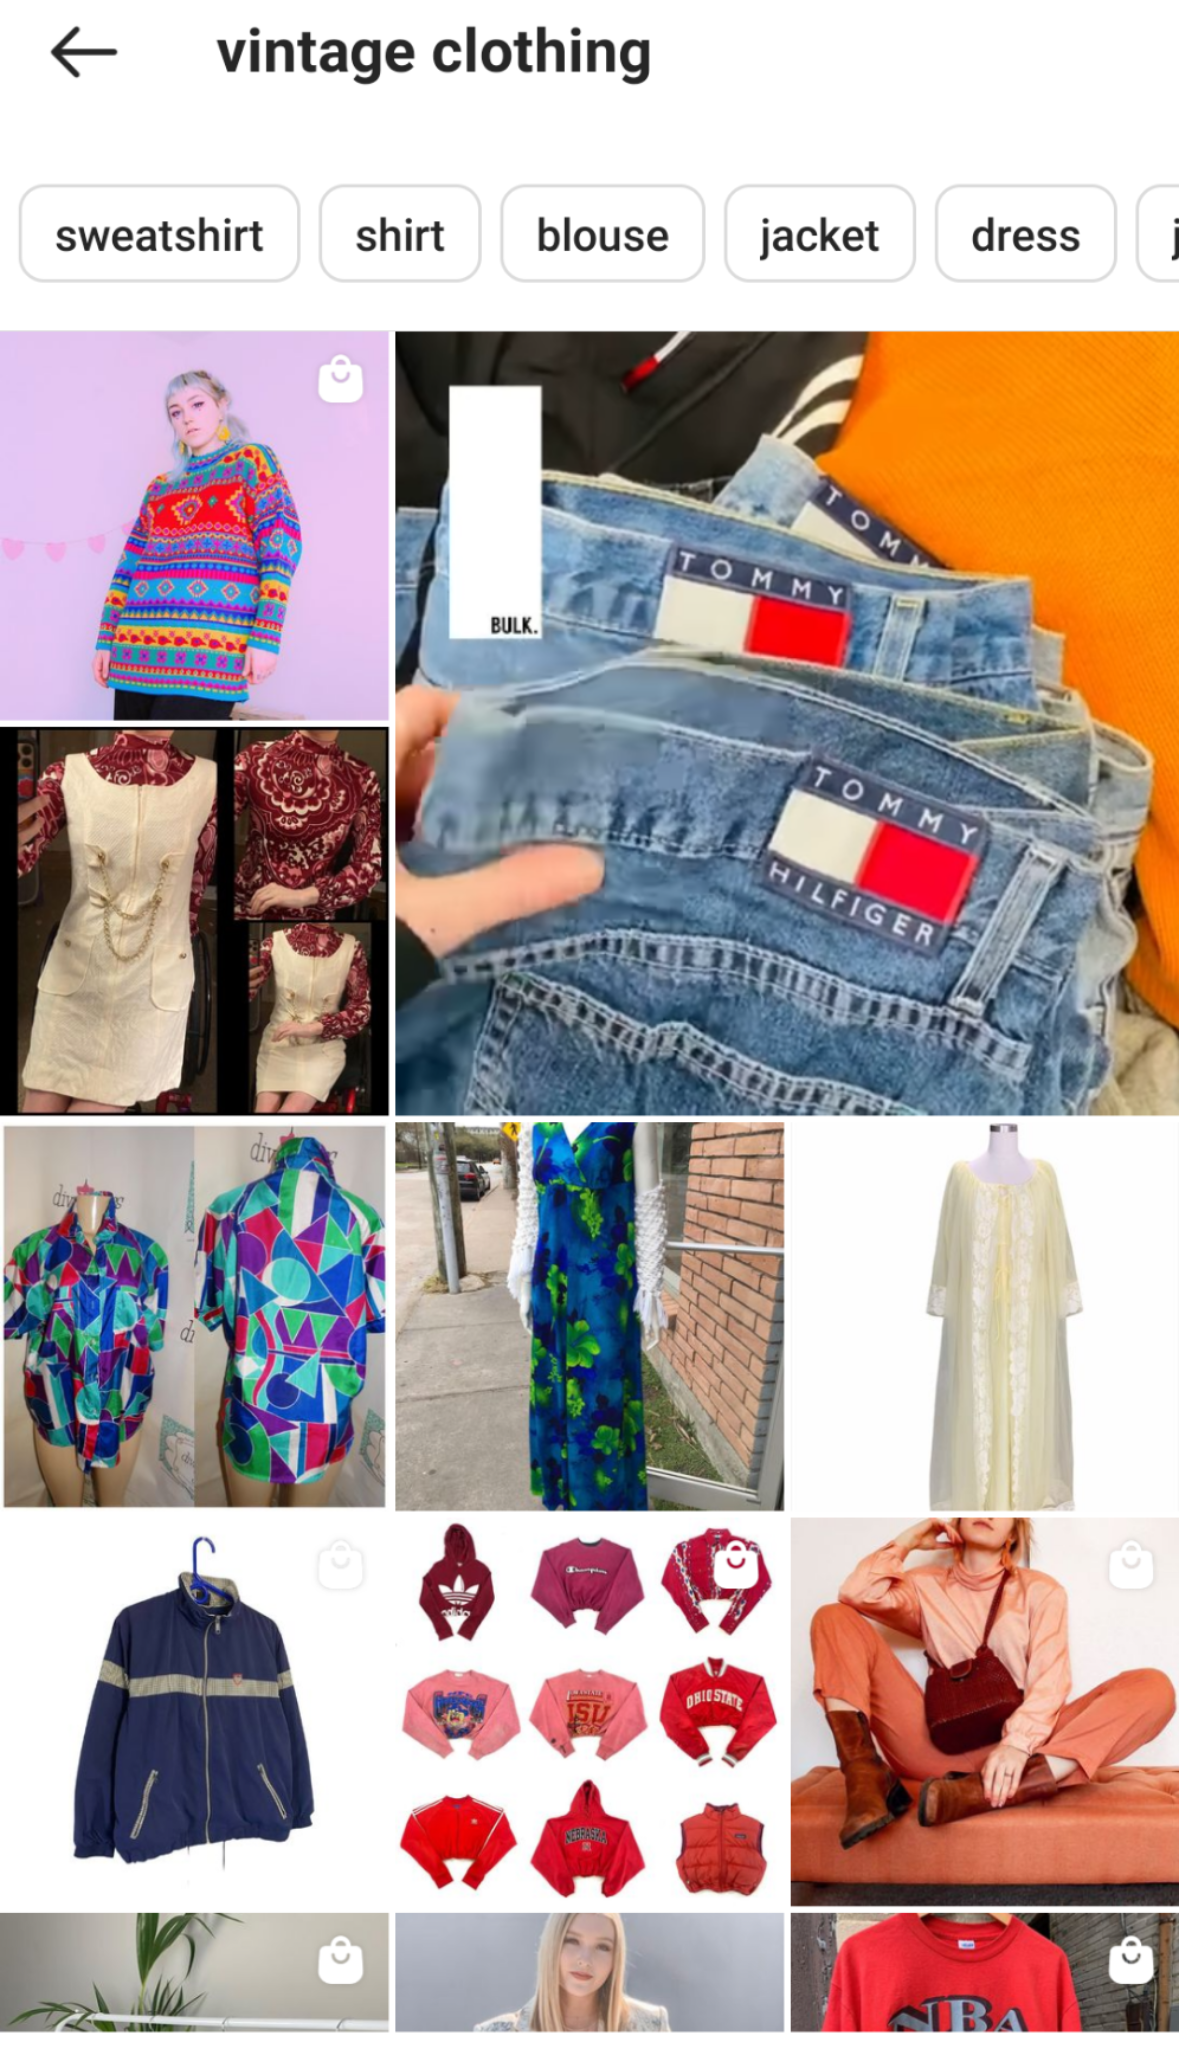 Make your Instagram a visual search engine